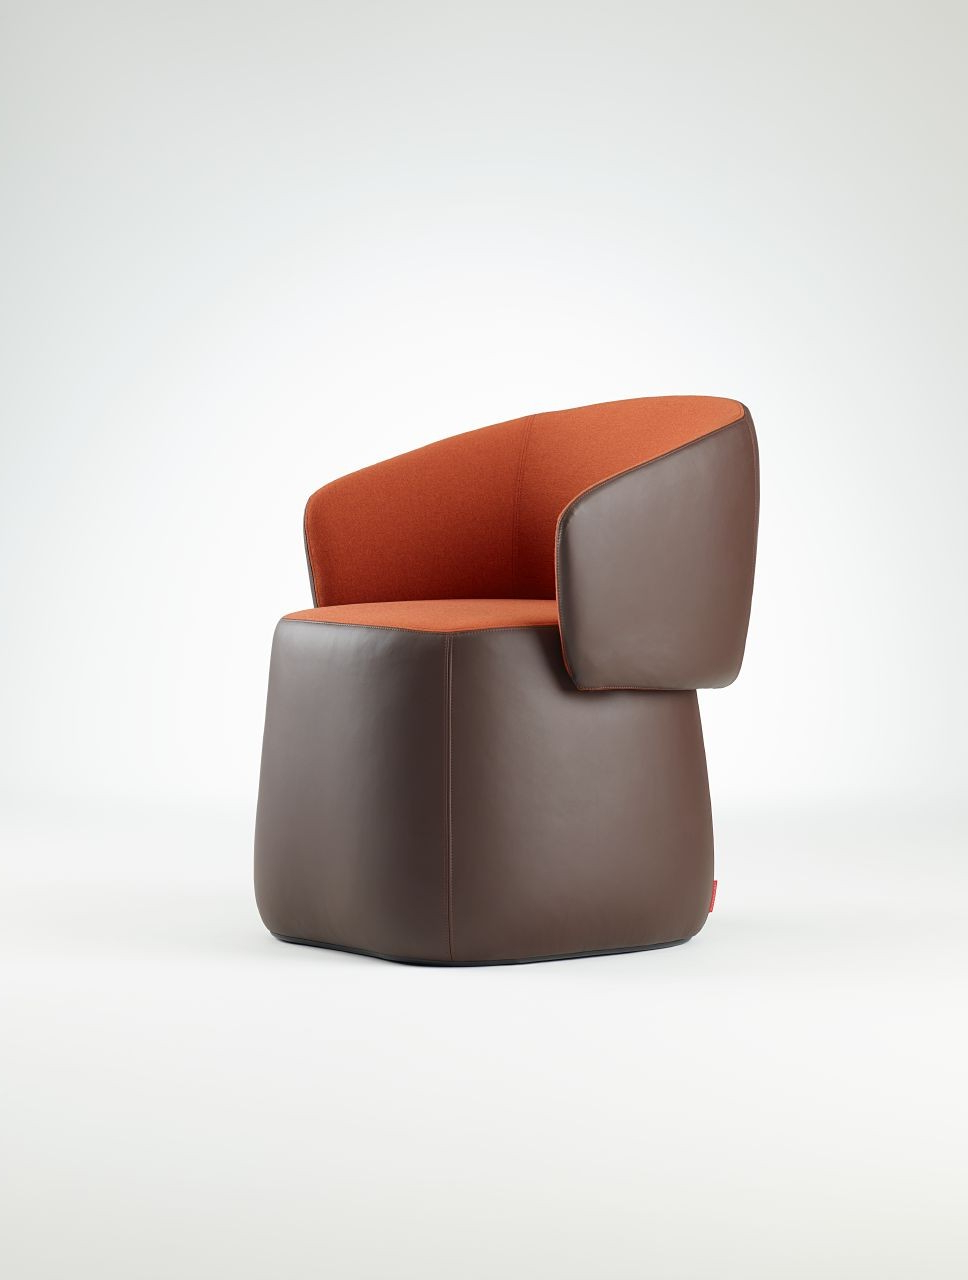 Haworth Openest Collection Chick Pouf With Back – Modern Planet In Current Chadwick Tomato Swivel Accent Chairs (View 3 of 20)